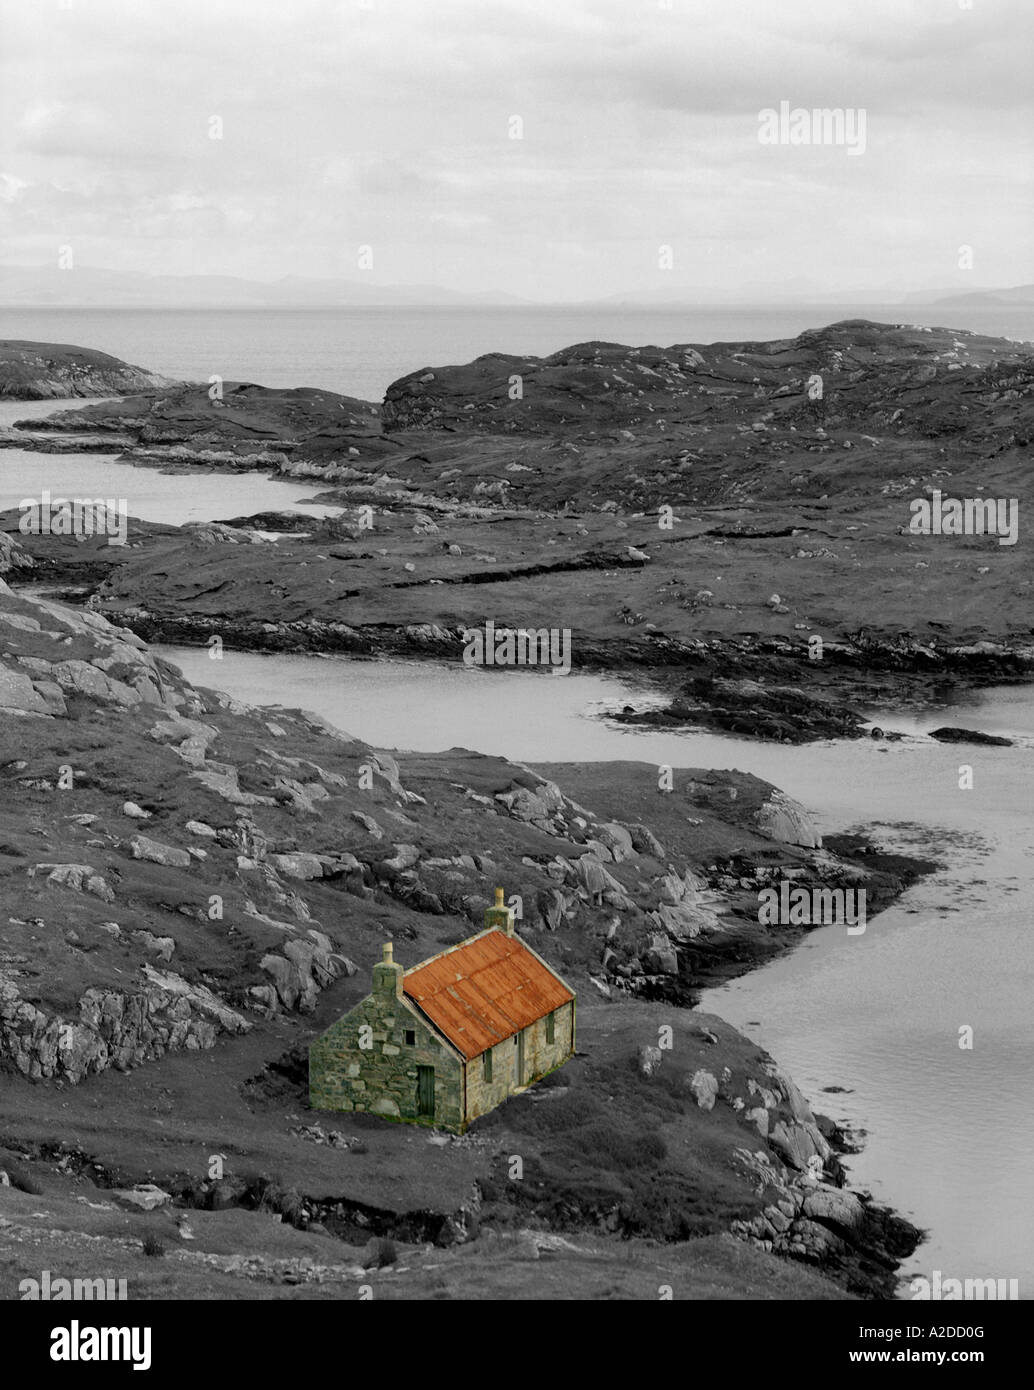 Old House by the shore, Isle of Harris, Western Isles, Scotland Stock Photo